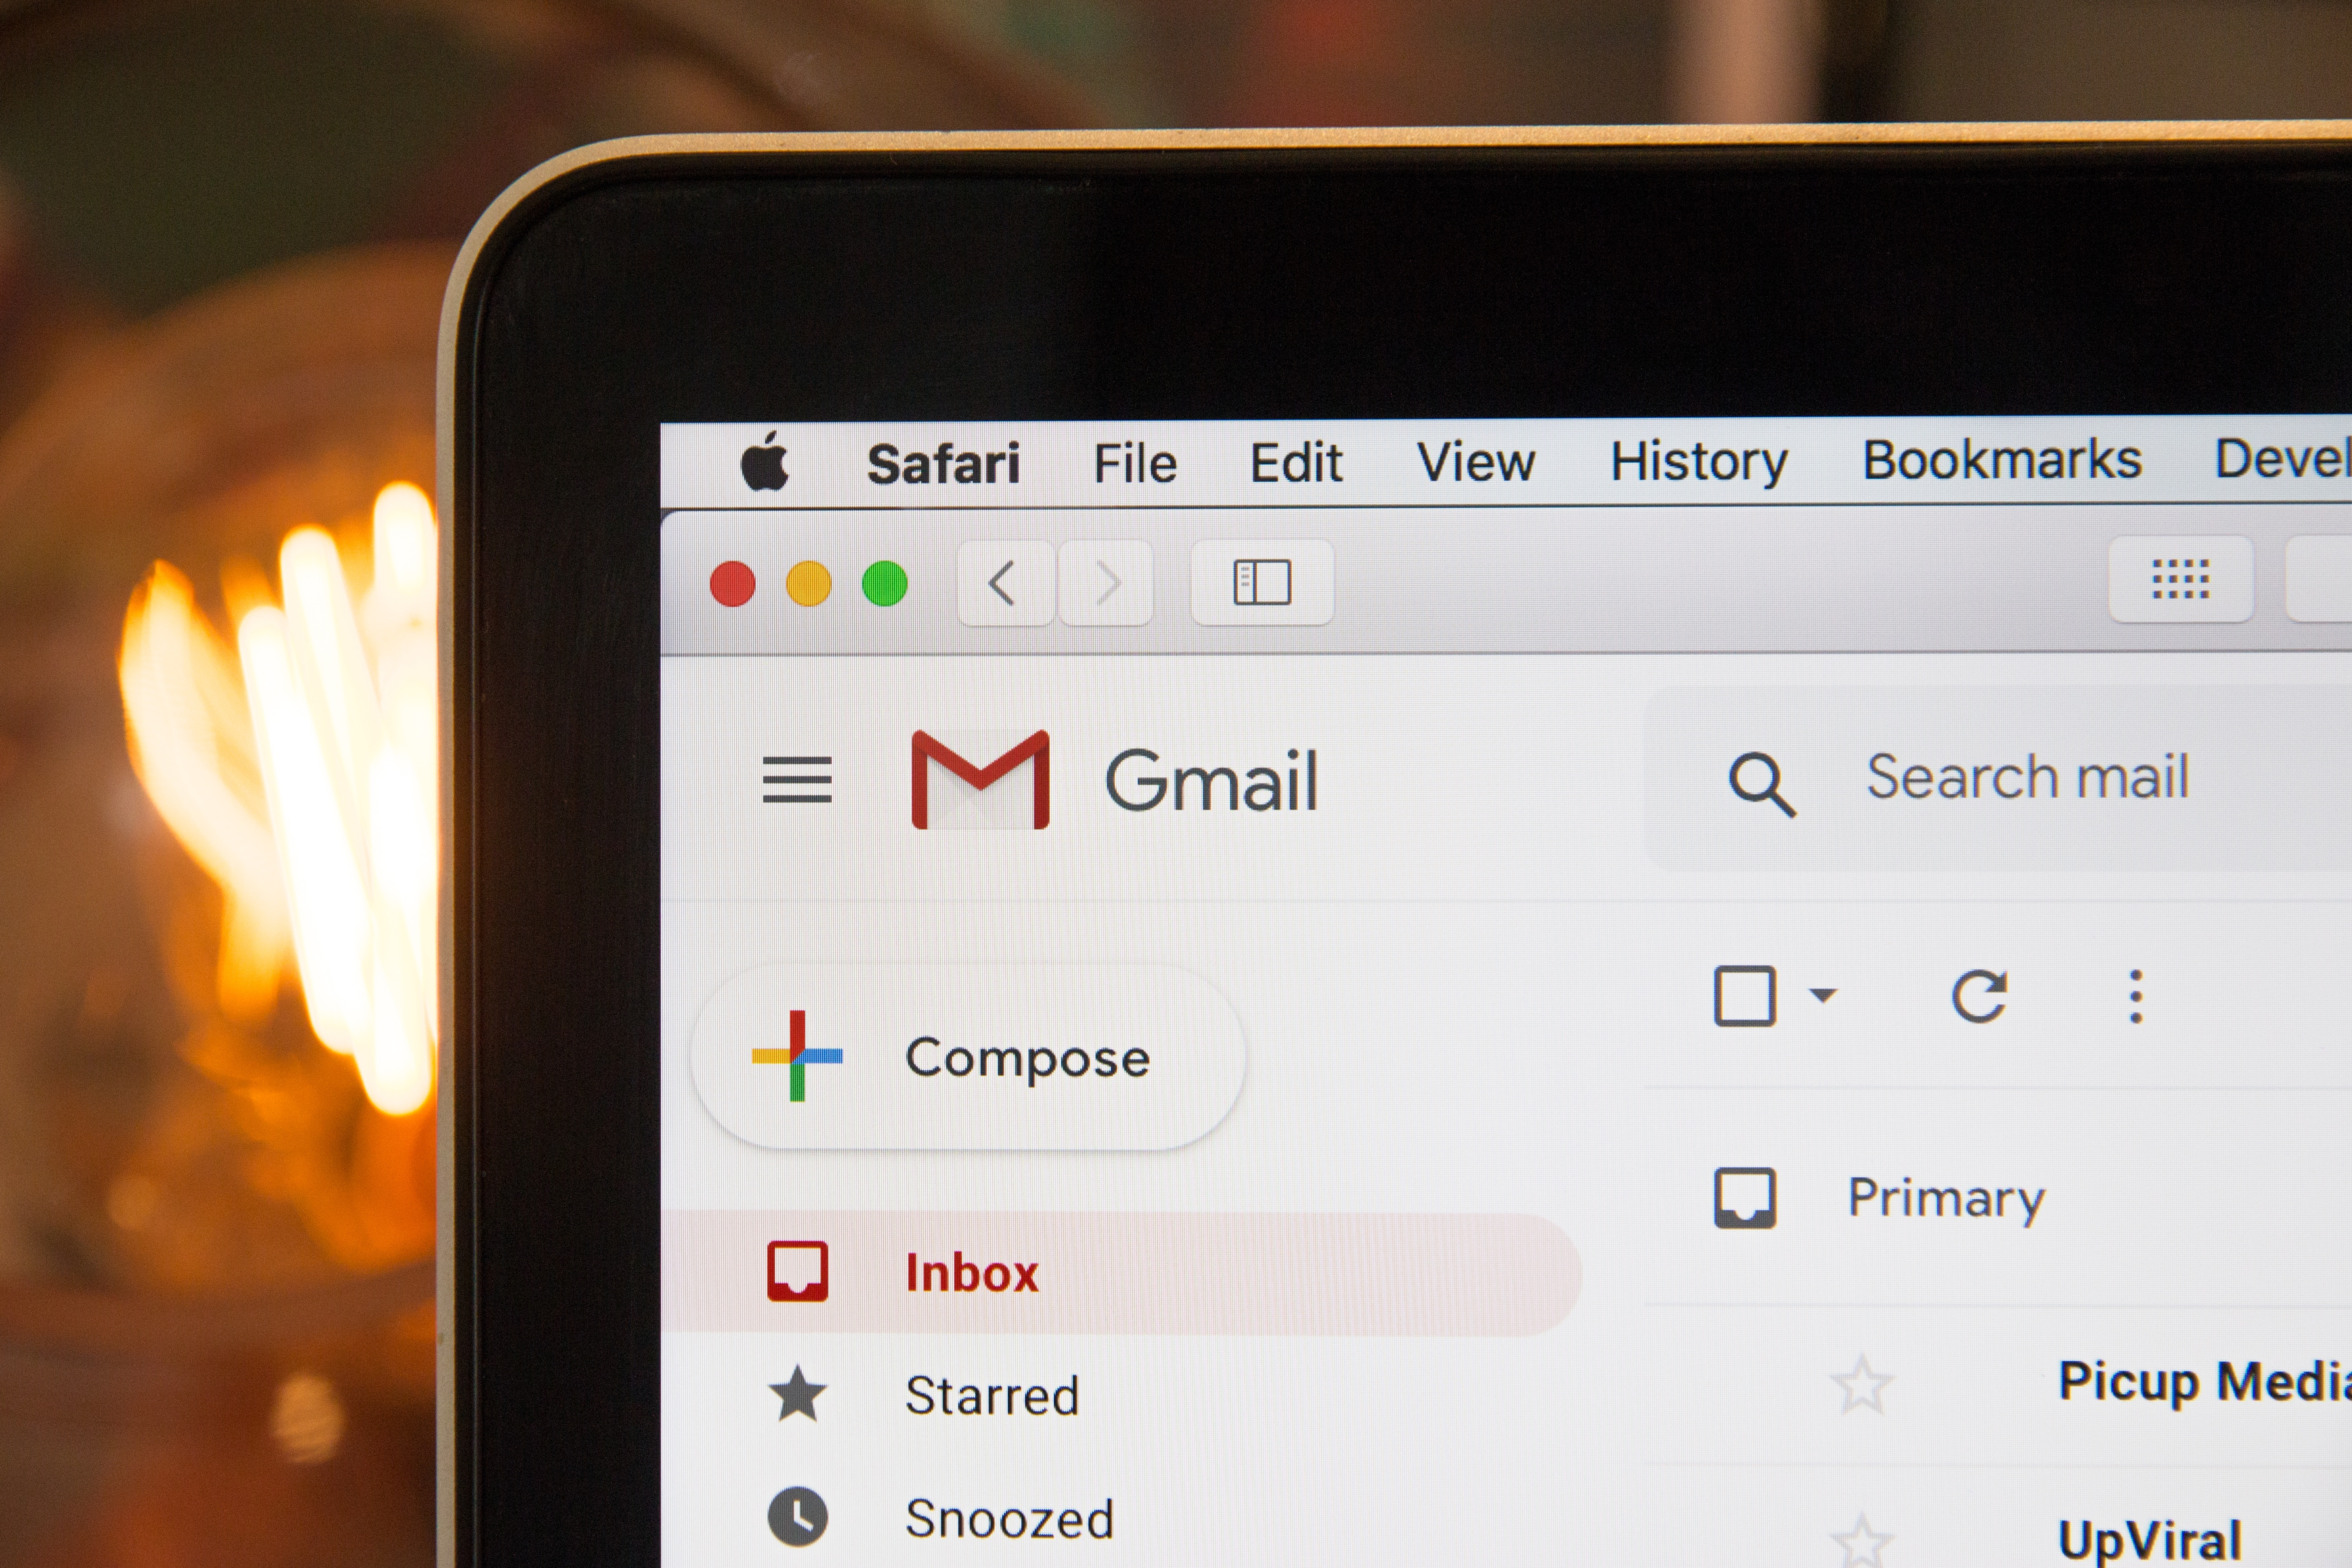 Gmail inbox, which is where emails are more likely to end up with email list cleaning